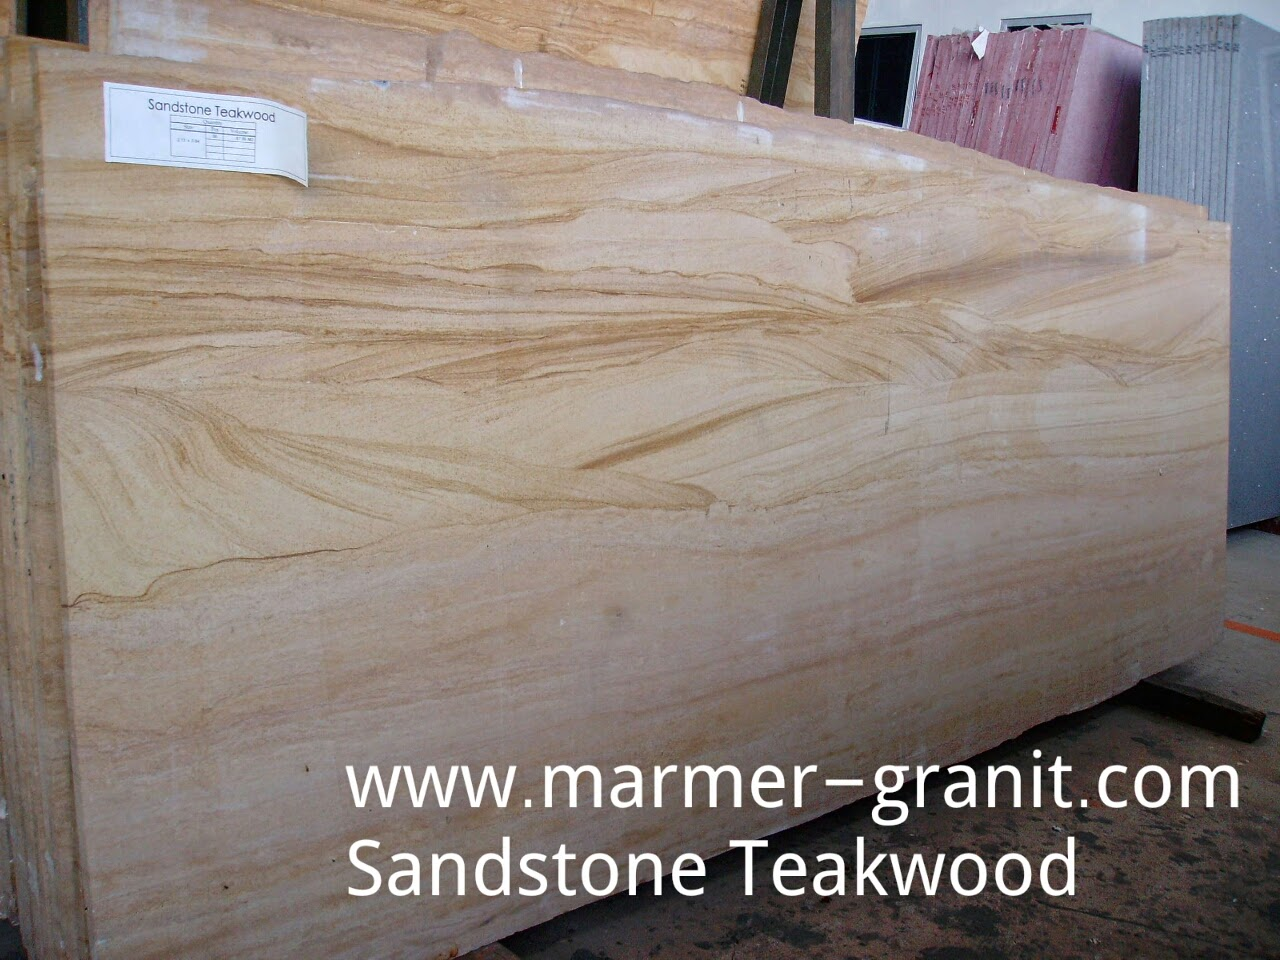 Sandstone Teakwood slabs